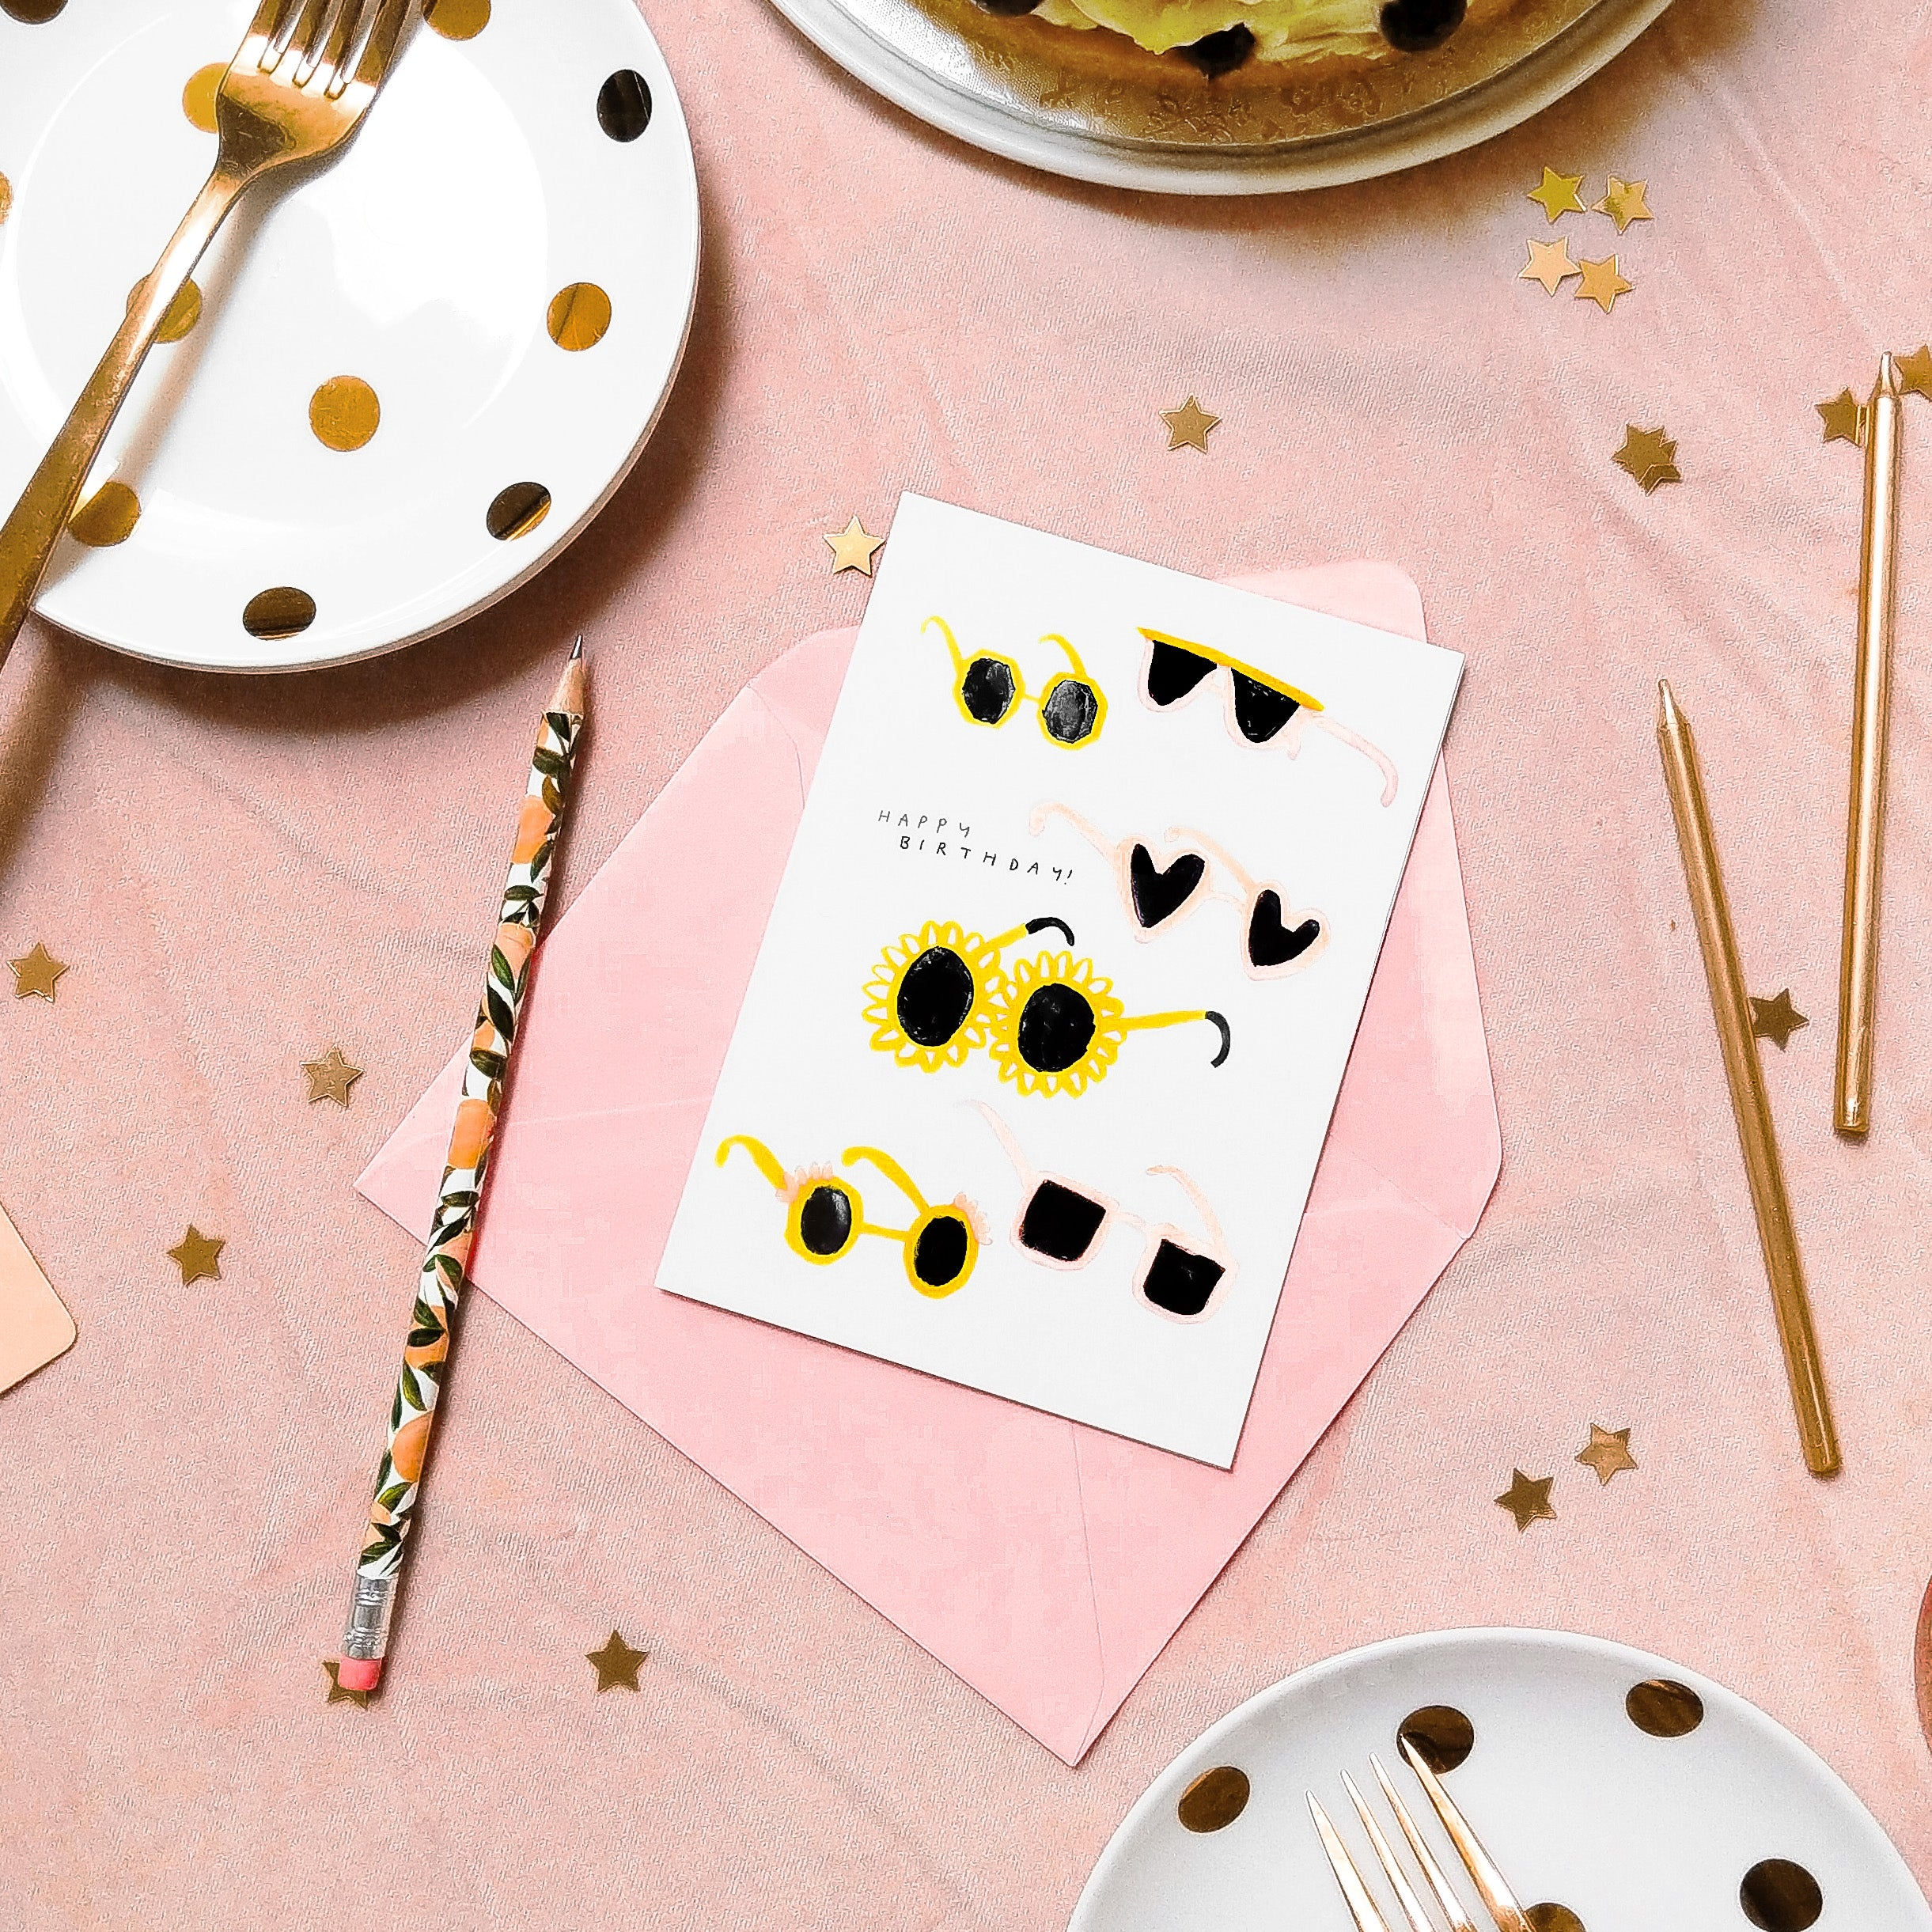 a white card with illustrated sunglasses on, on a pink party tablecloth